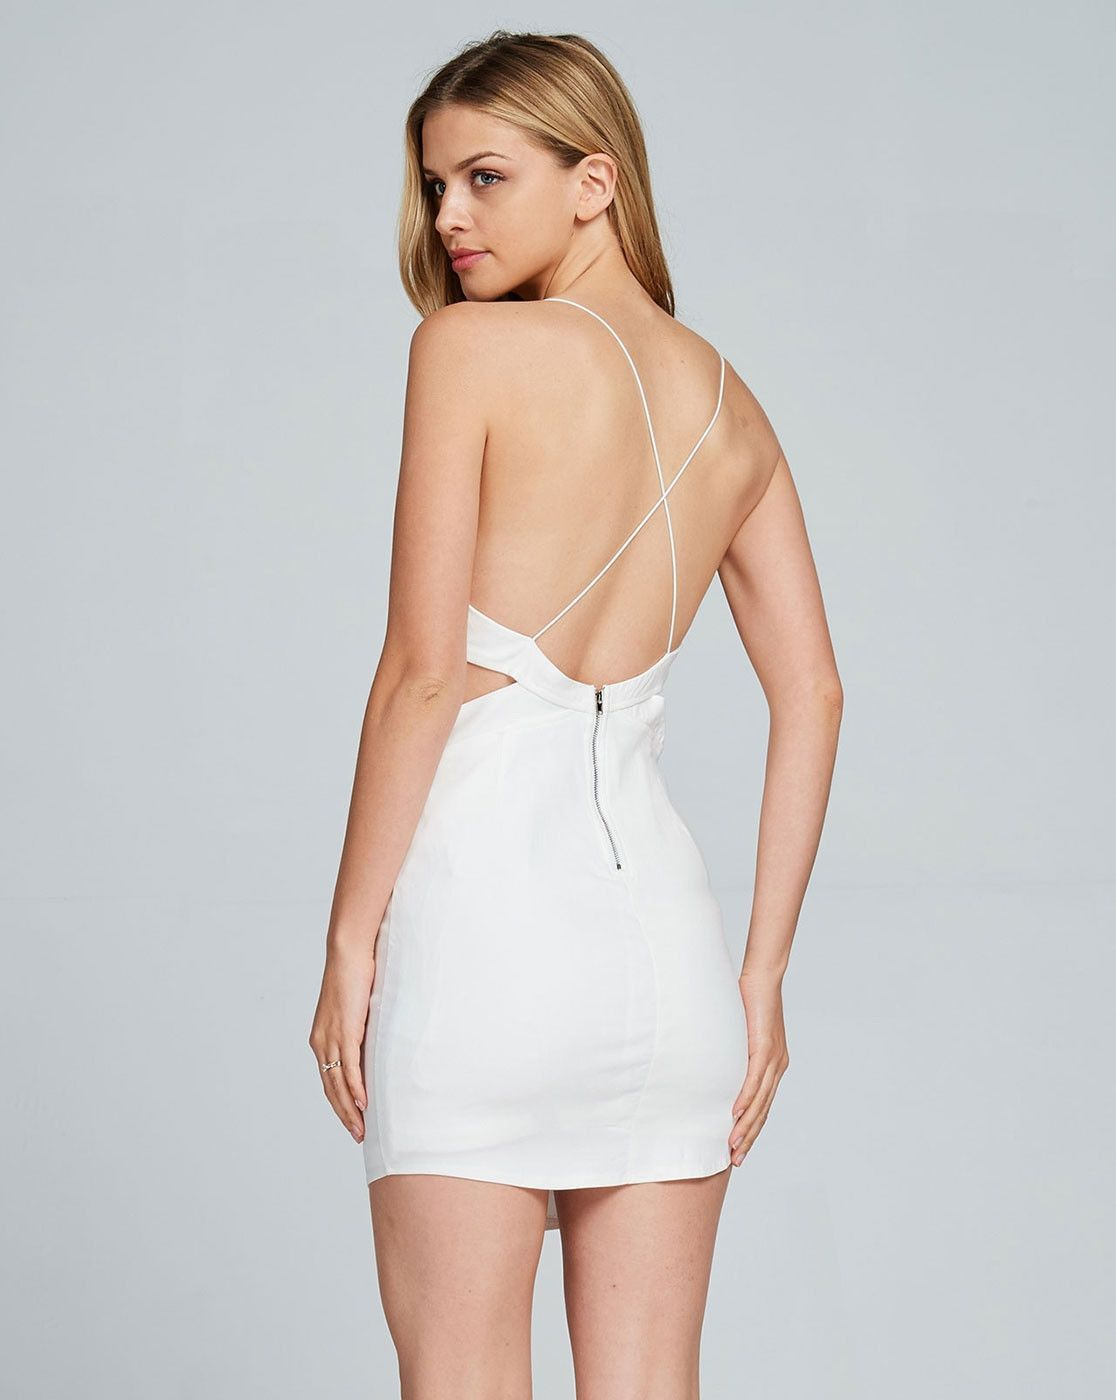 The All White Mini Party Dress is one of our most popular summer dresses.  Who could resist this super seductive silhouette. It features perfectly  placed ... 940db6cb5